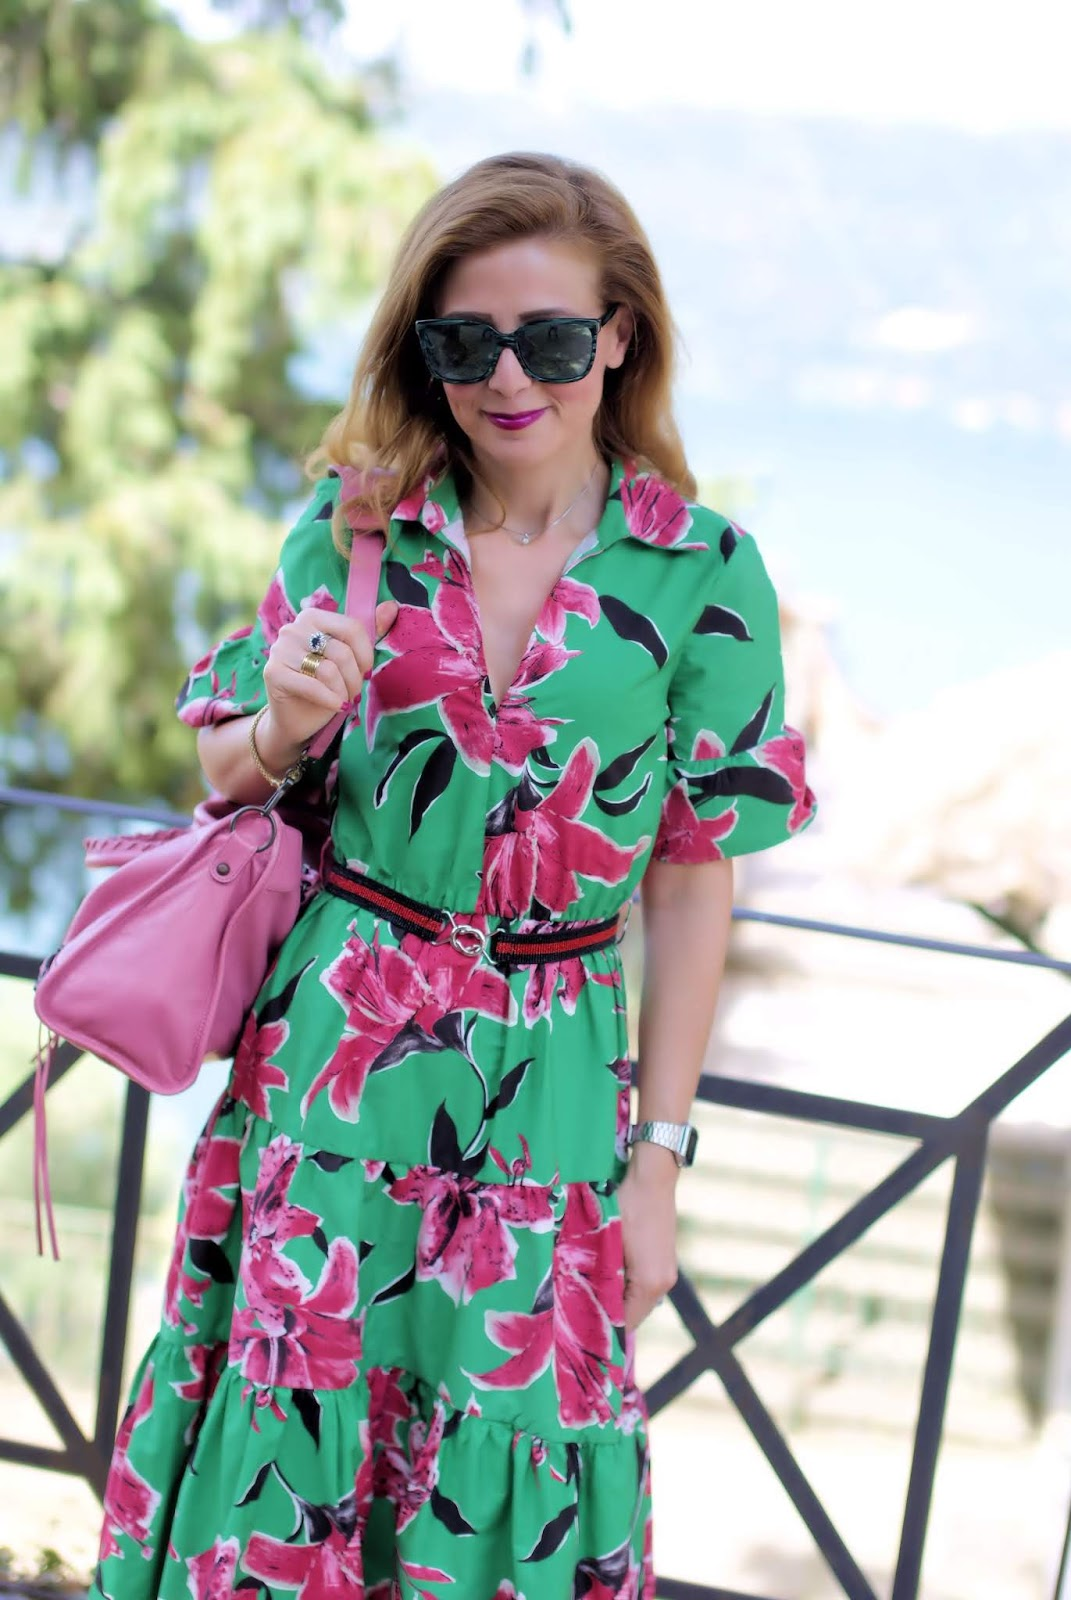 The best dress for Summer is floral and green on Fashion and Cookies fashion blog, fashion blogger style